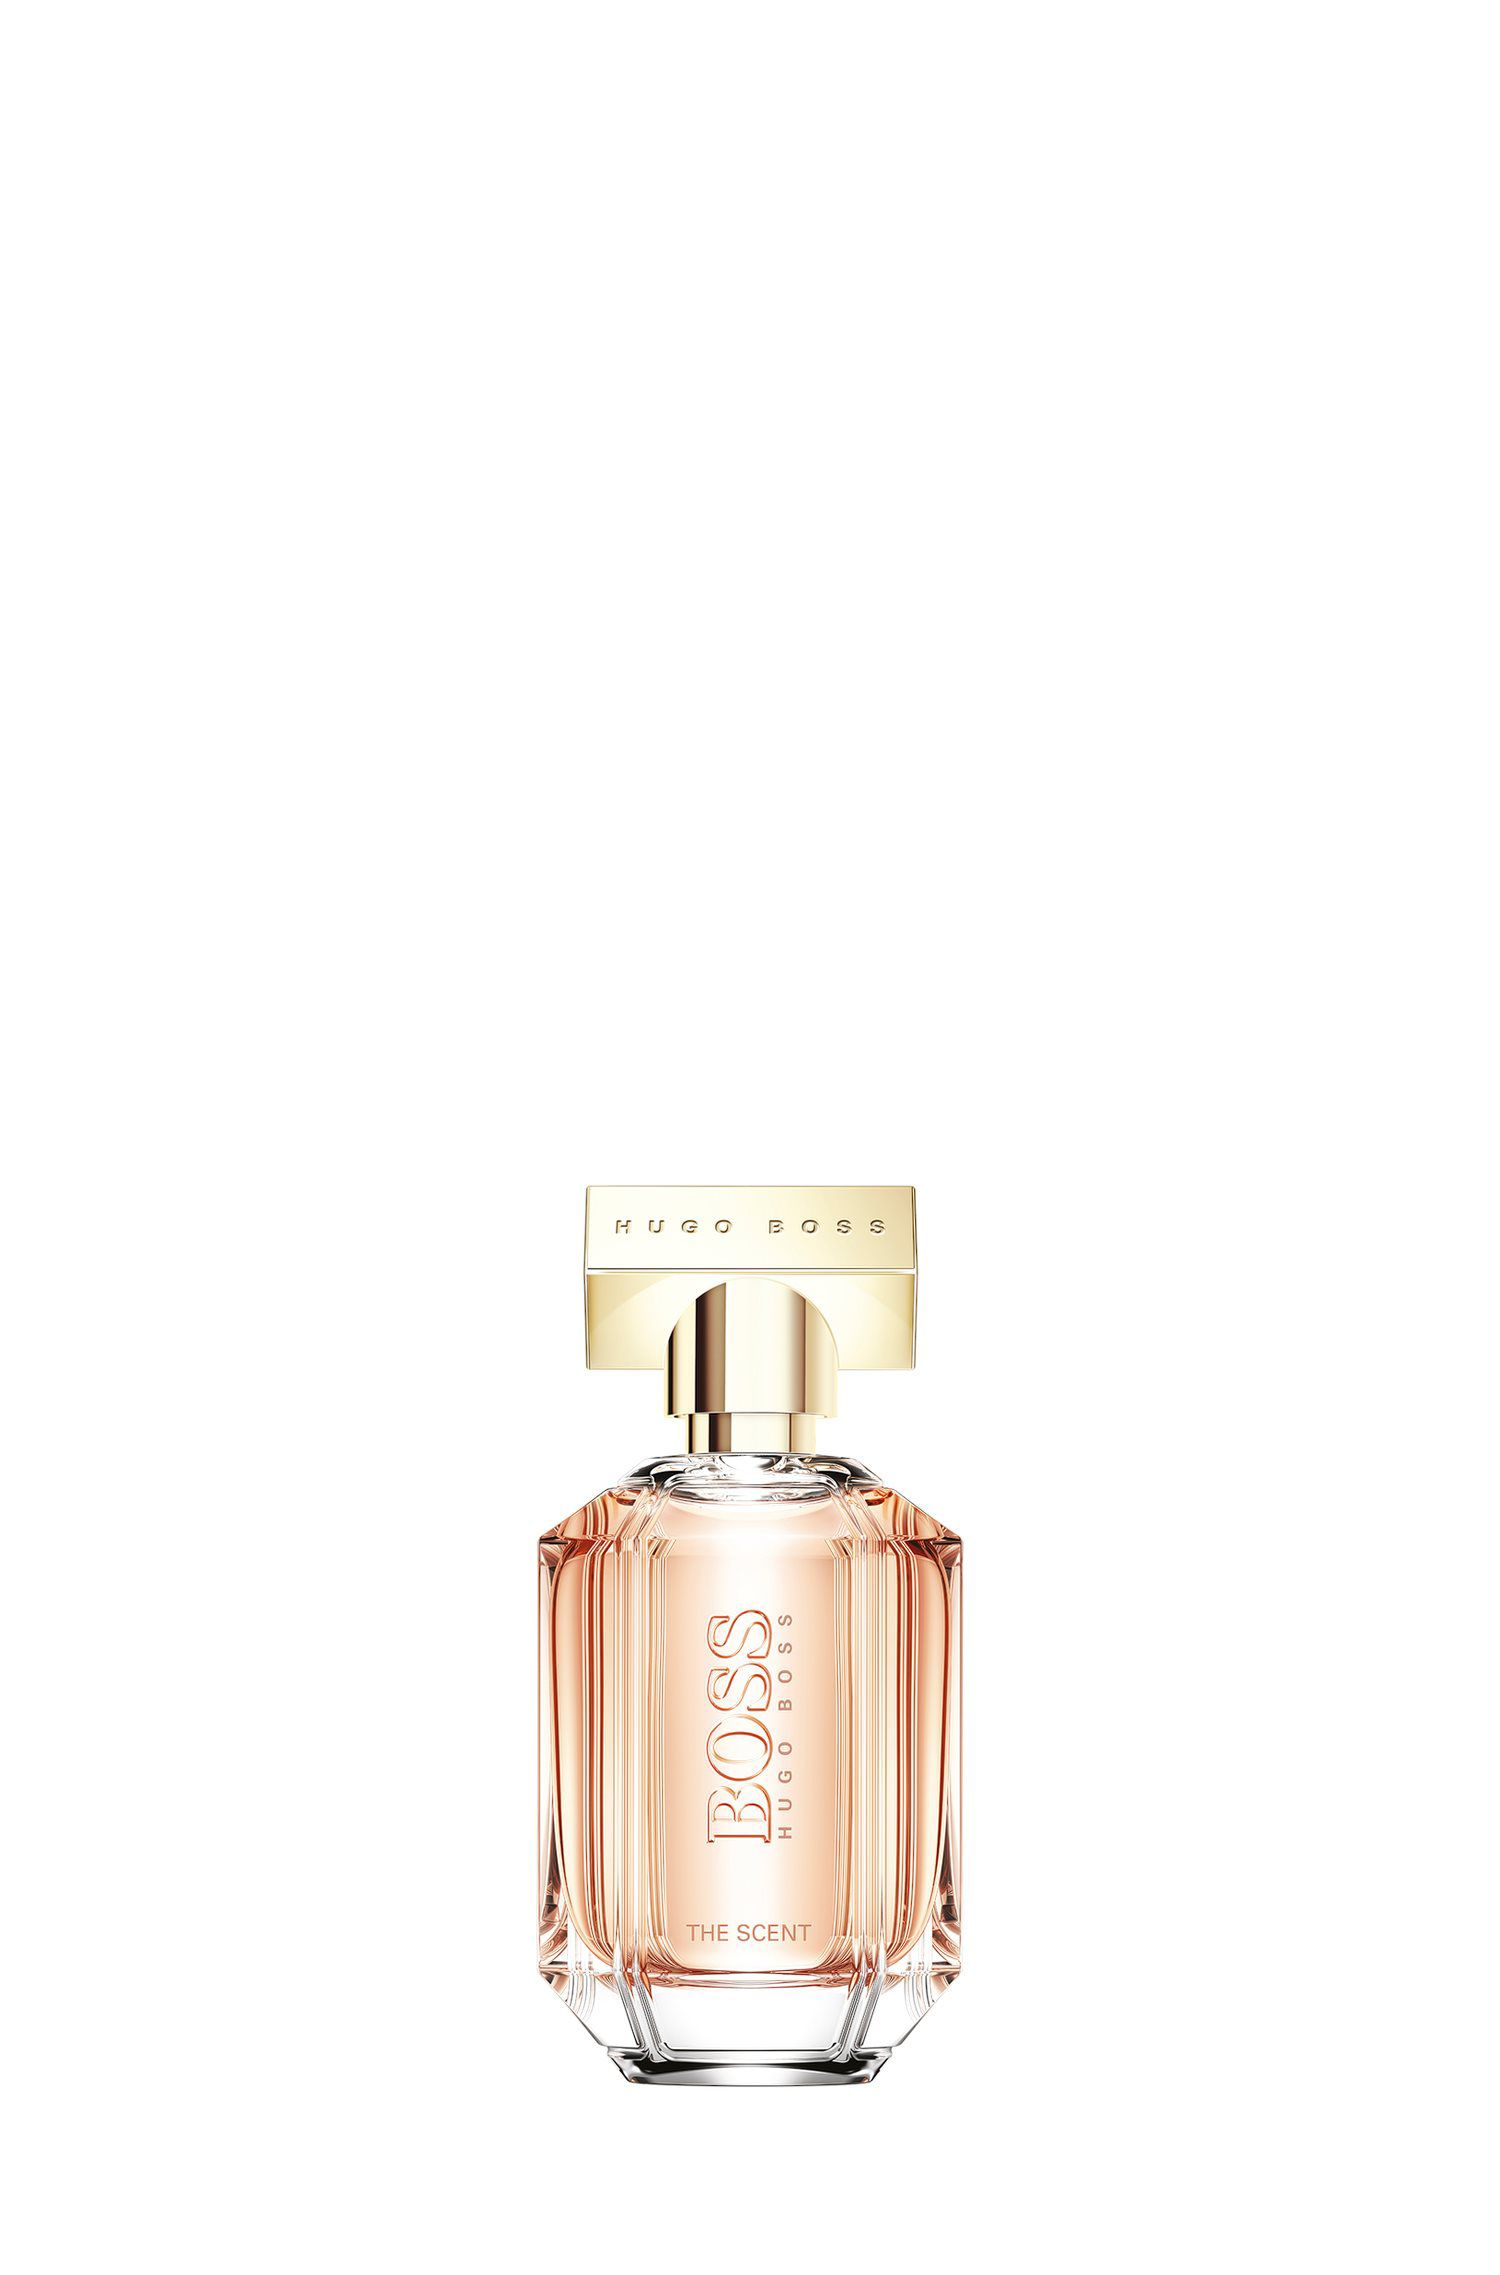 'BOSS The Scent for Her' Eau de Parfum 30 ml, Assorted-Pre-Pack